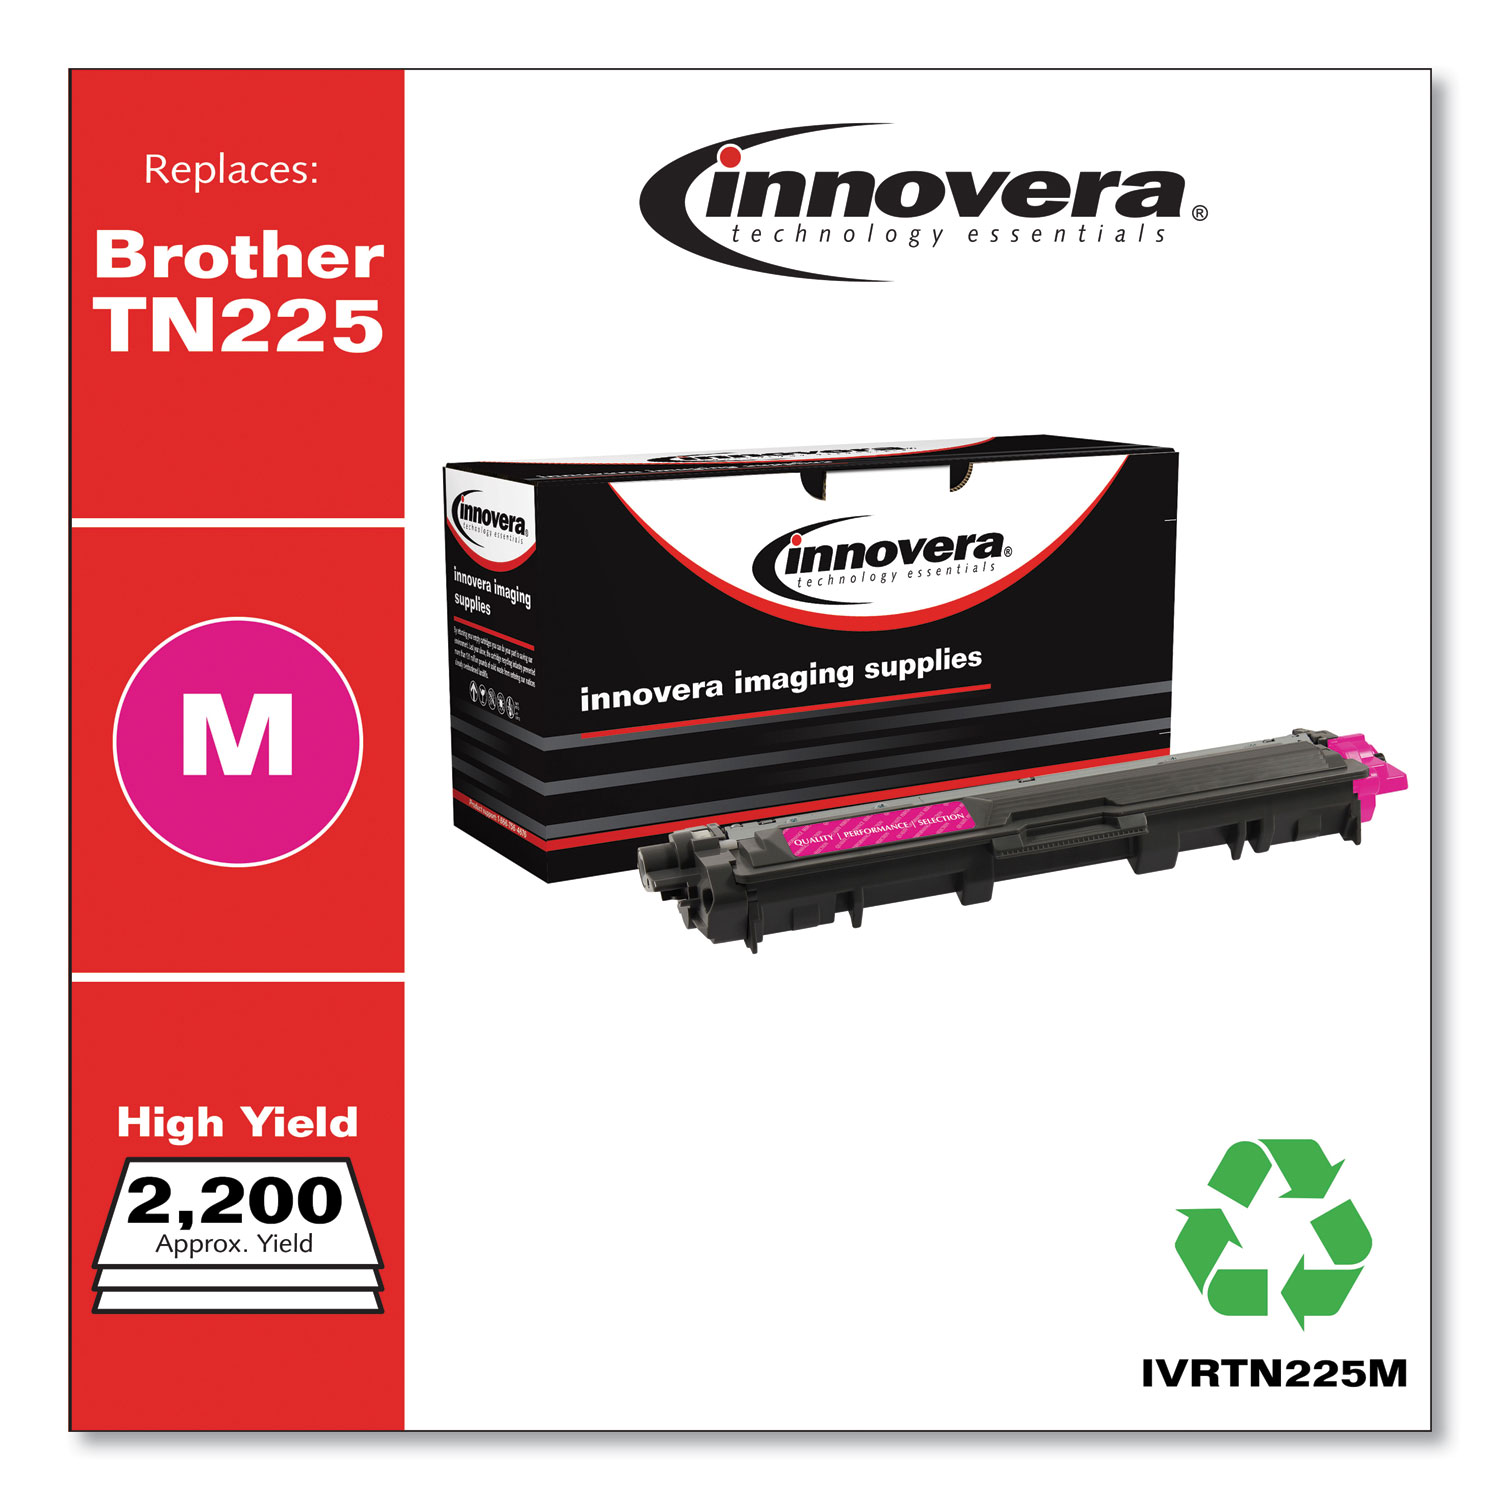 Remanufactured Magenta High-Yield Toner, Replacement for Brother TN225M, 2,200 Page-Yield IVRTN225M